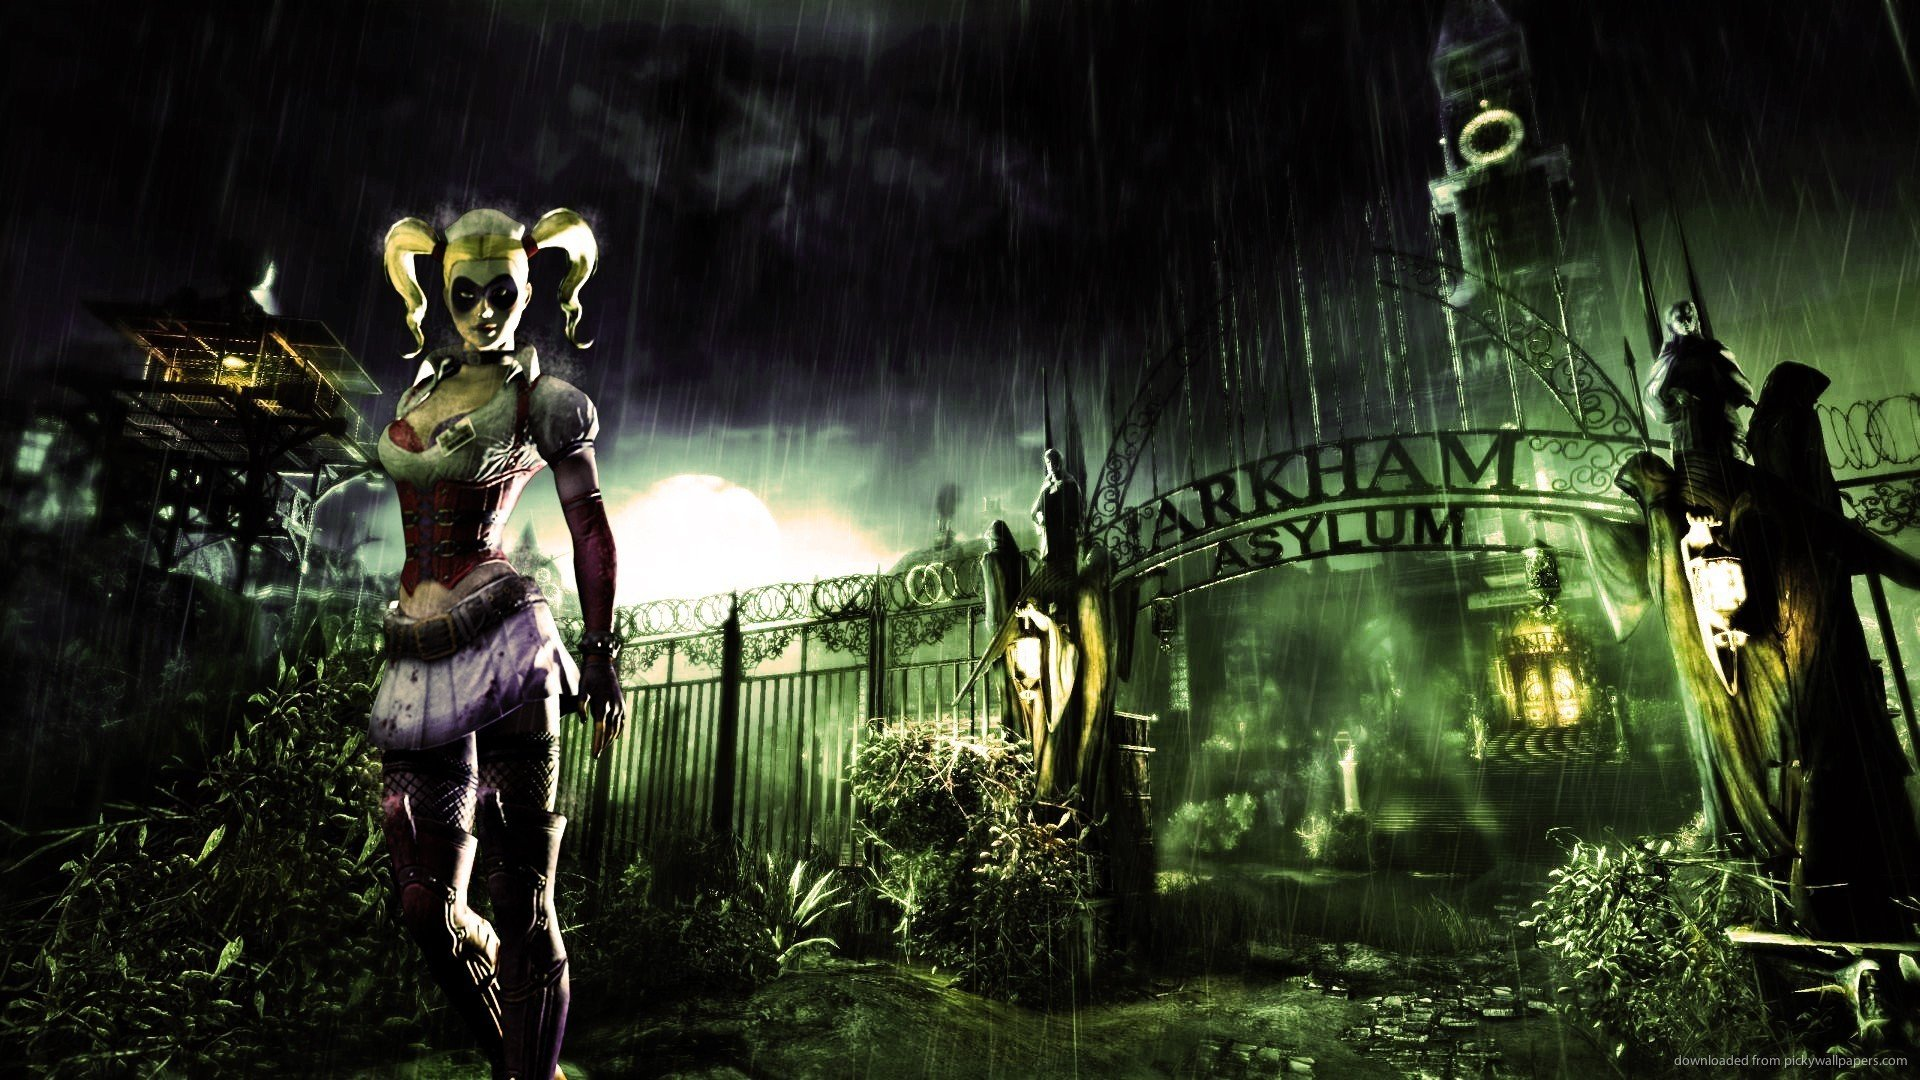 Batman Arkham Asylum Wallpaper: Harley Quinn Wallpaper HD 1080p